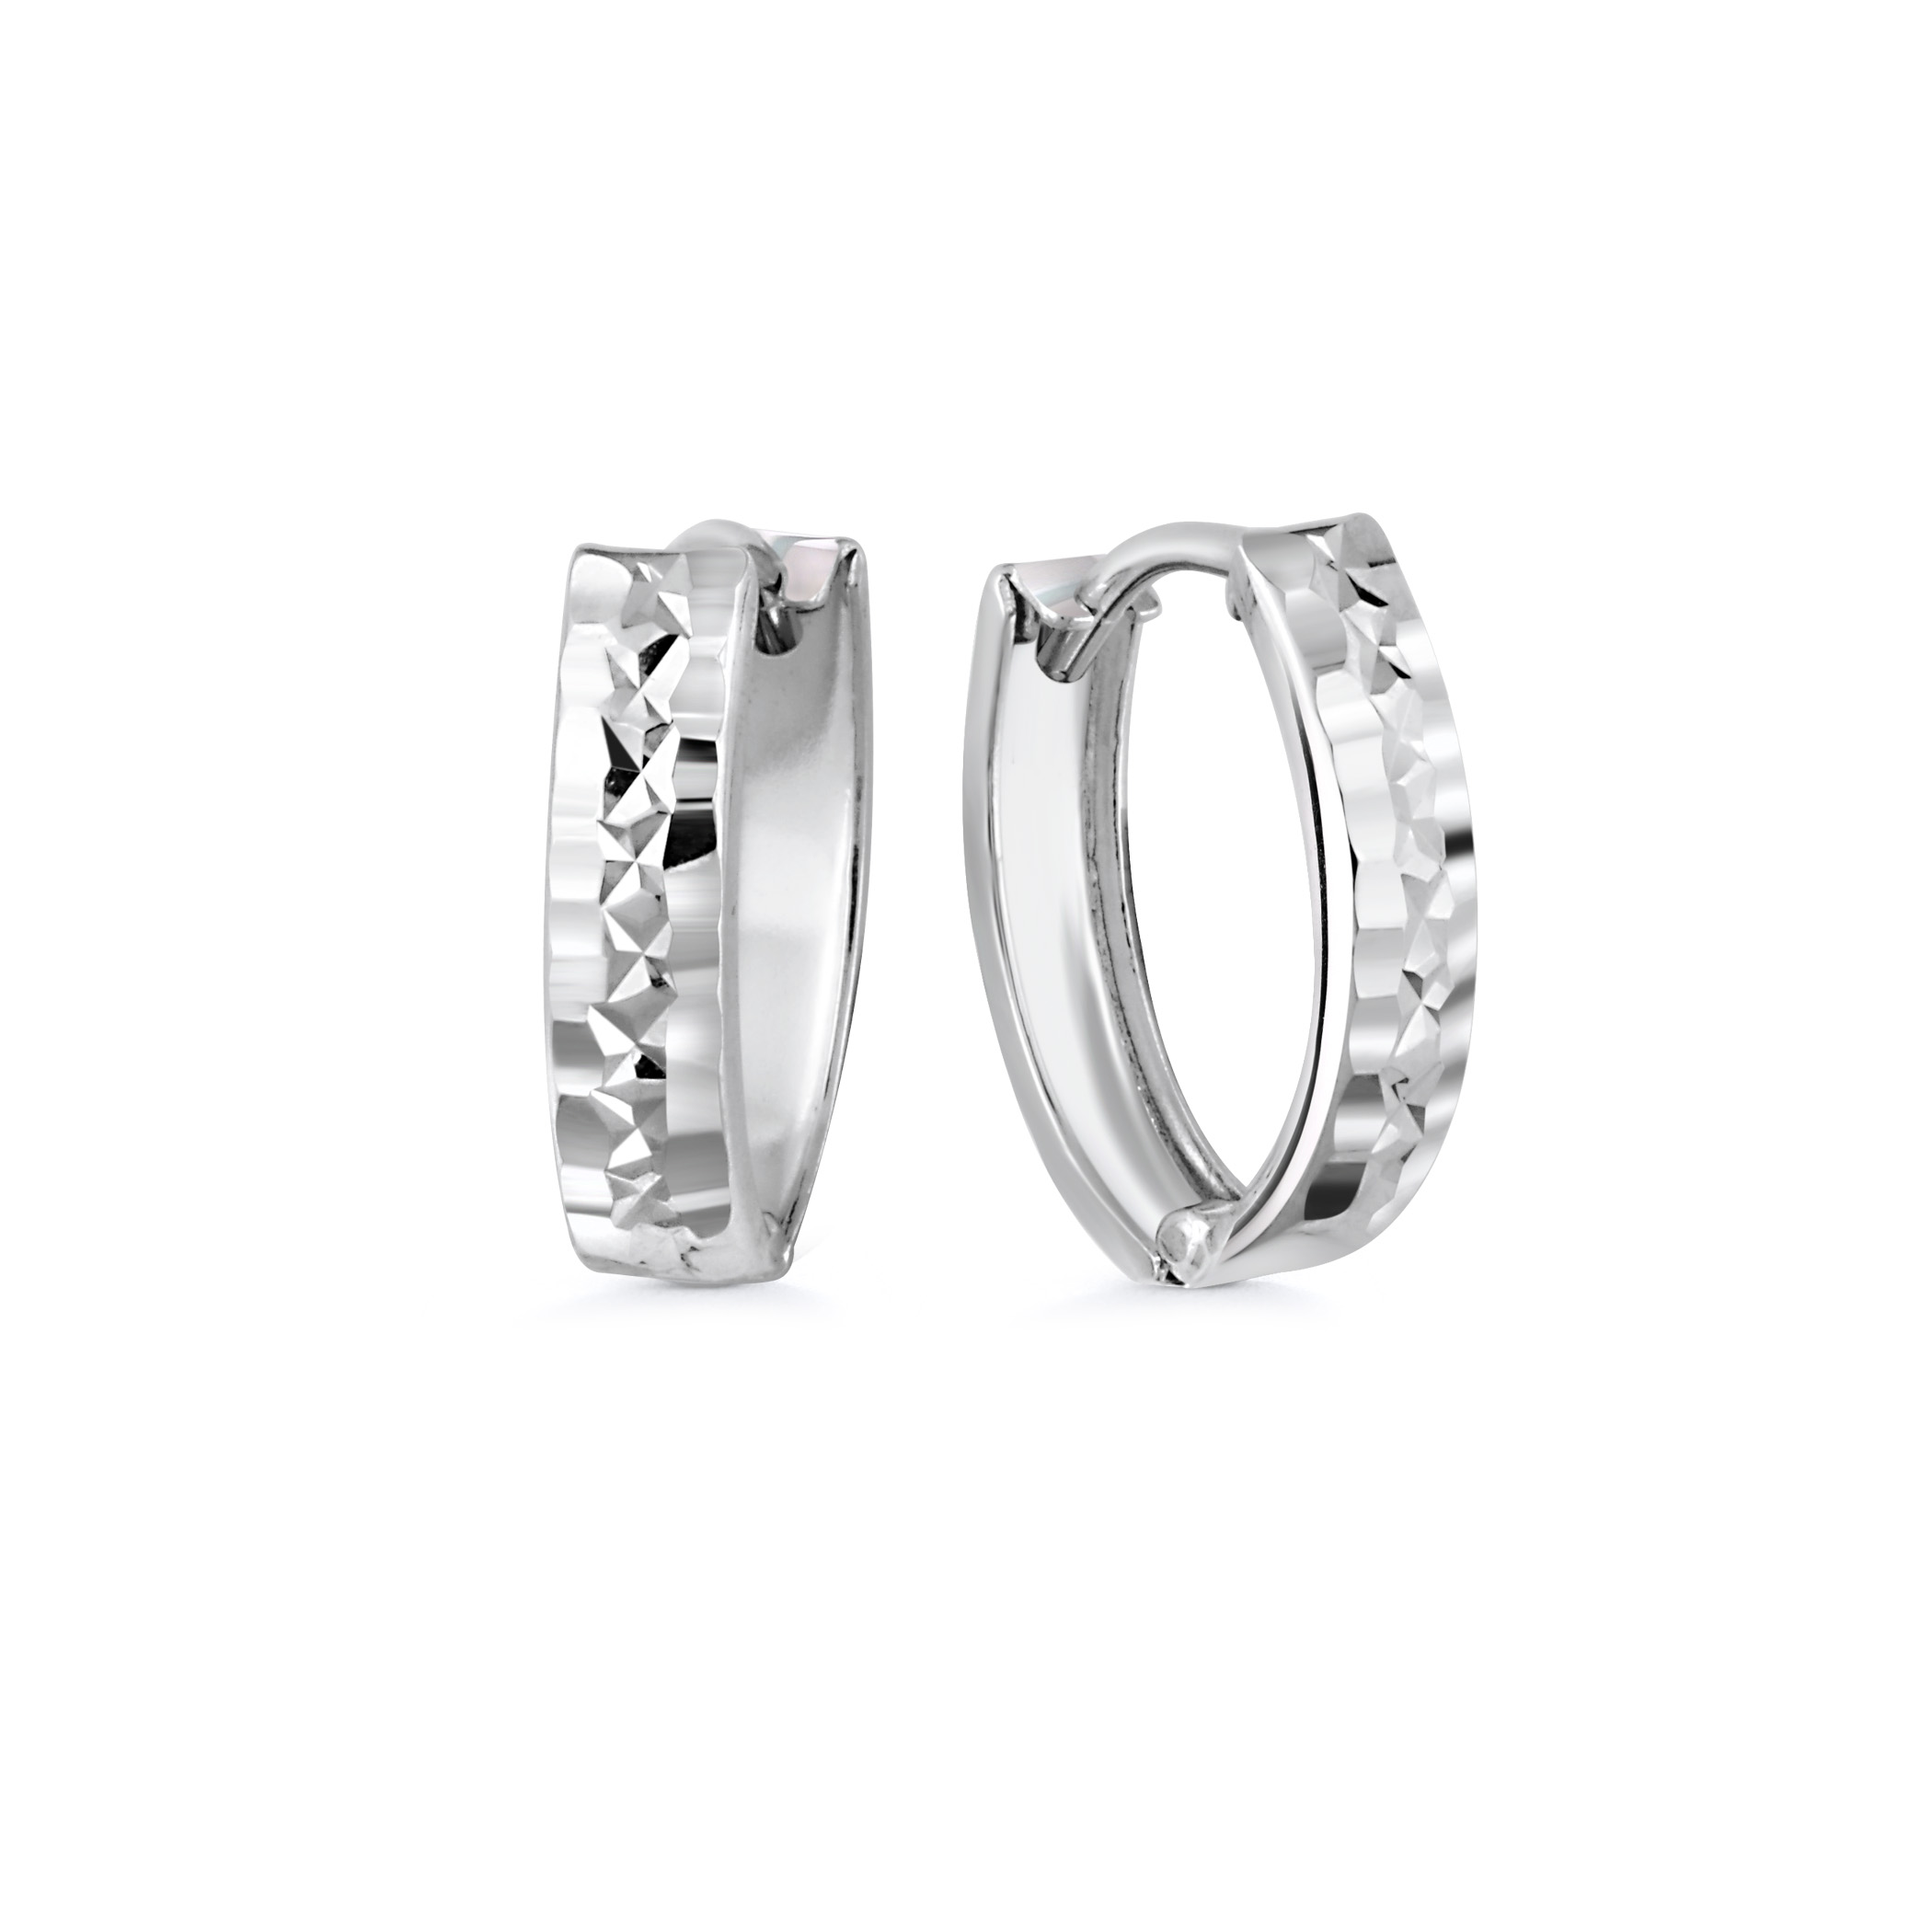 Oval huggies earrings for children - 10K white Gold